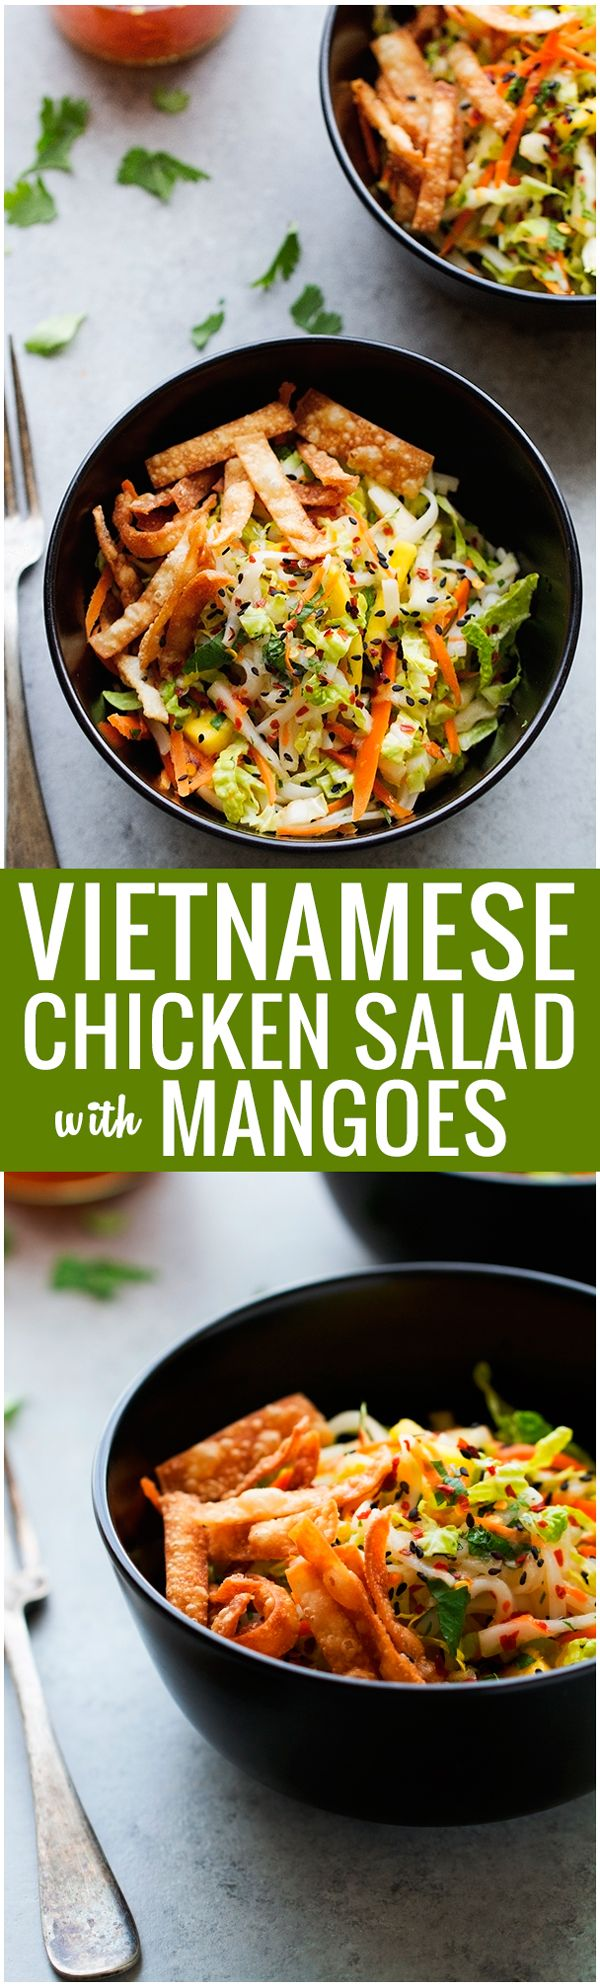 Vietnamese-Chicken-Salad-Vietnamese Chicken Salad with Mangoes - A super easy salad that is so delicious. Seriously the best! #chickensalad #vietnamesesalad #ricenoodlesalad | Littlespicejar.com